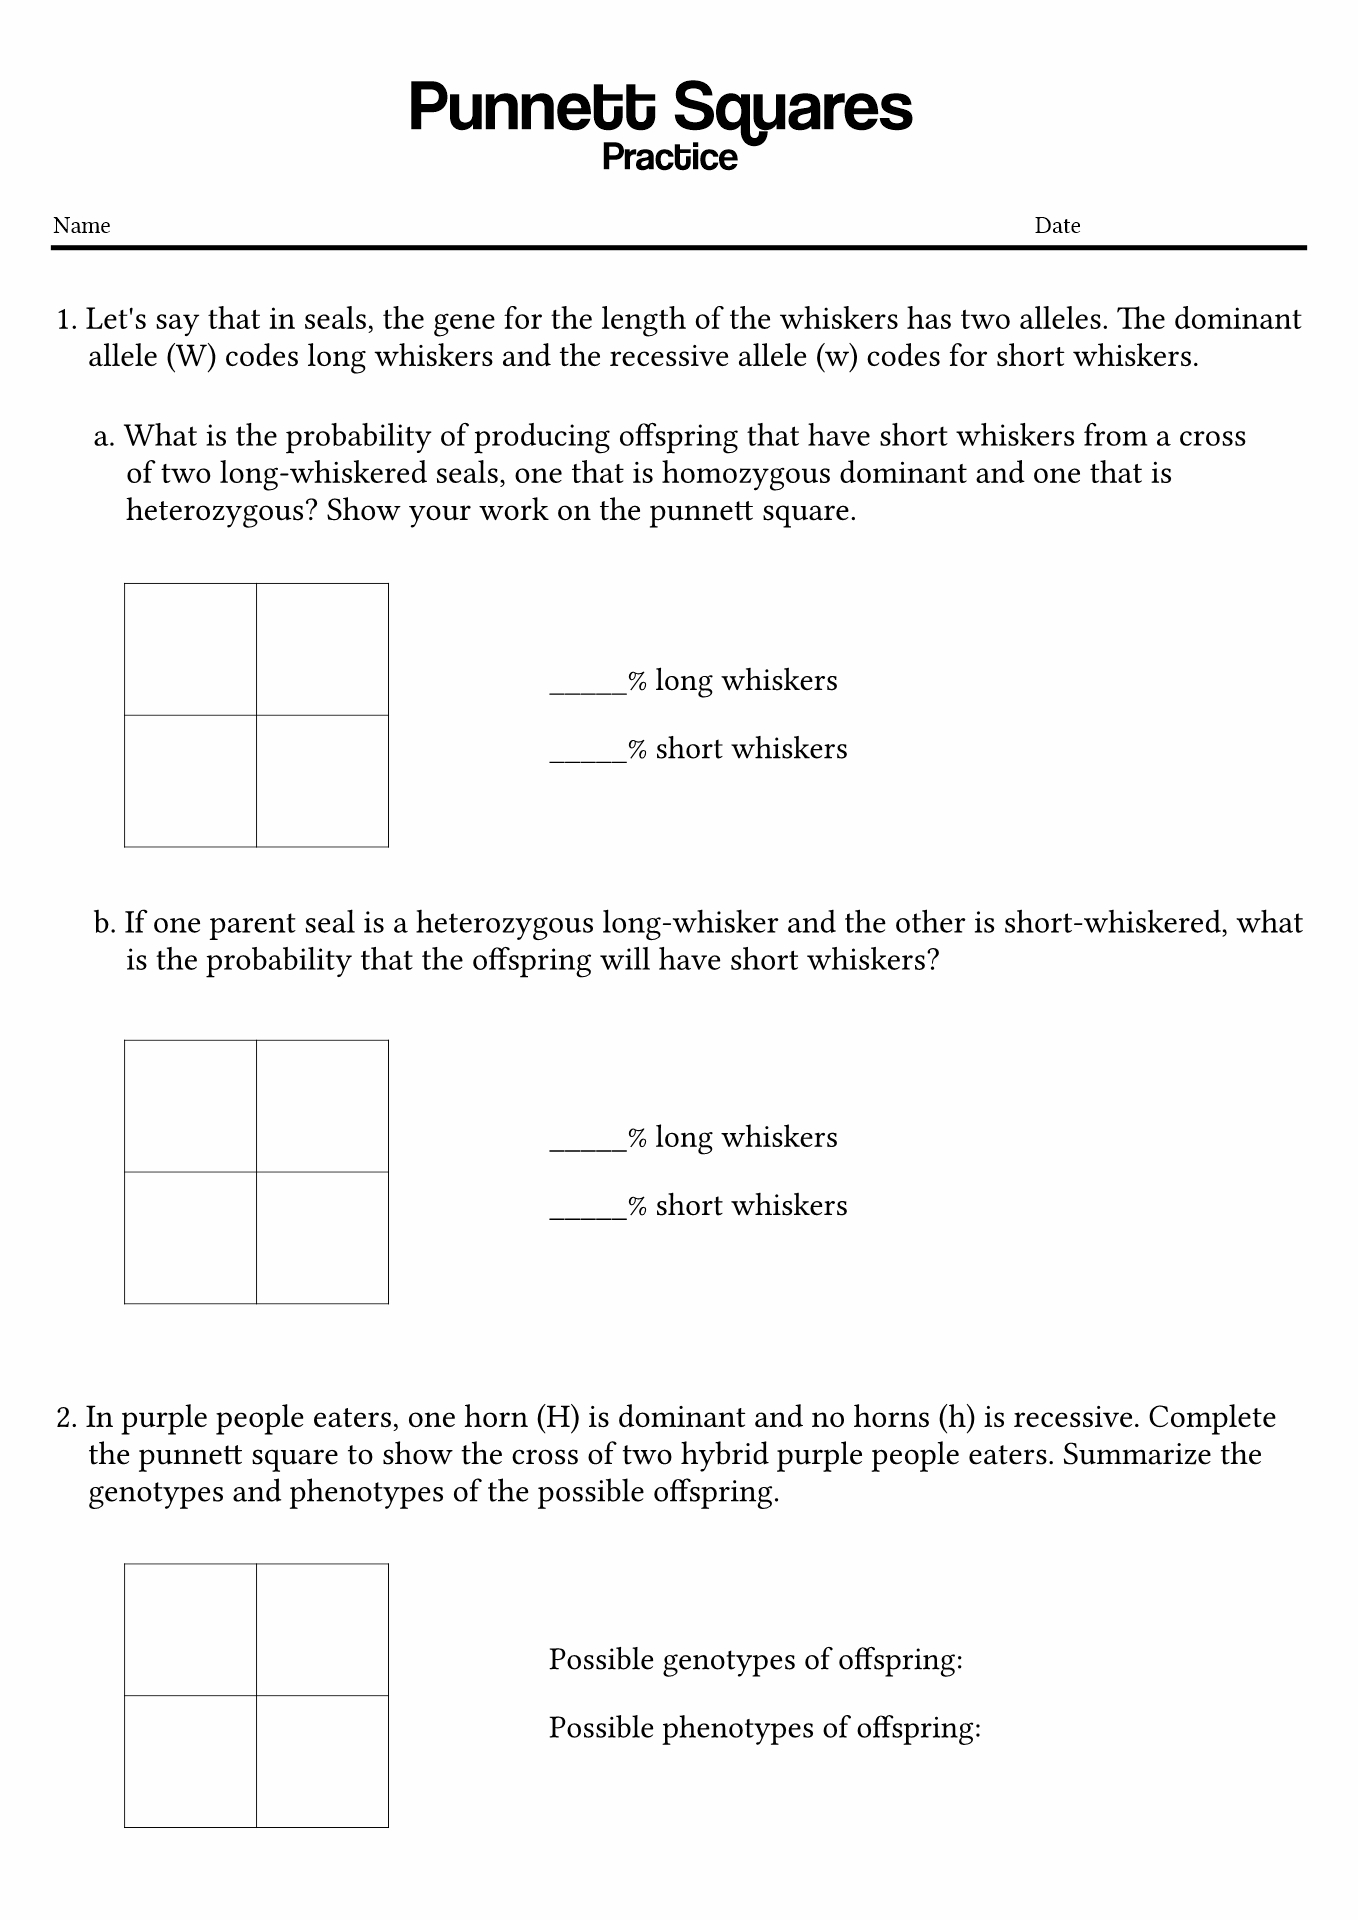 35 Punnett Square Worksheet 1 Answers